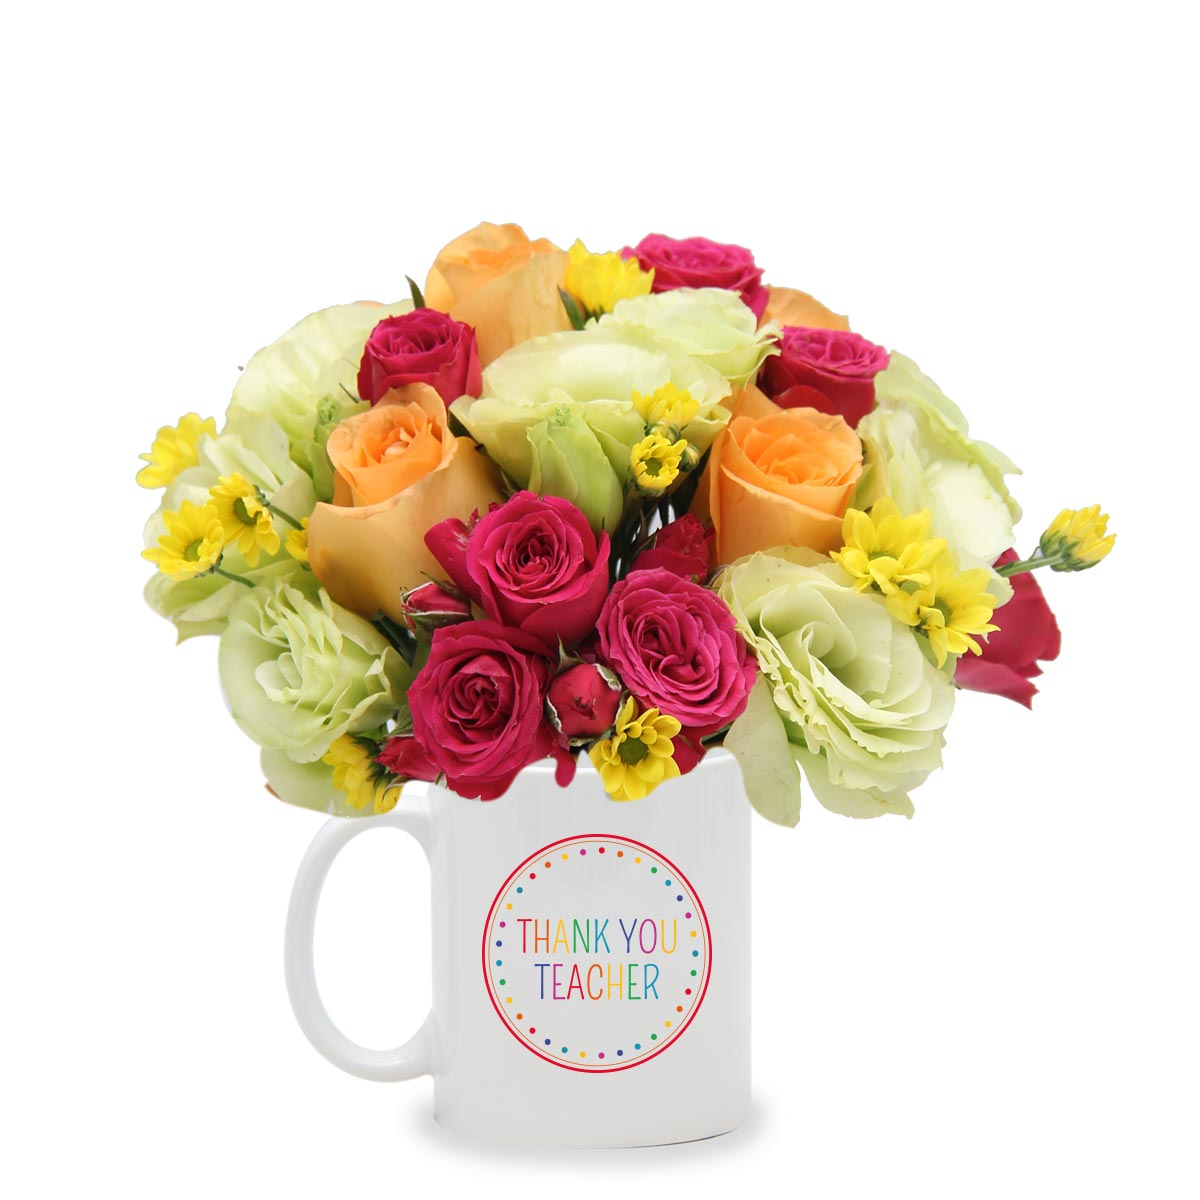 COB1602 Gratefulness shocking pink orange roses arrangement